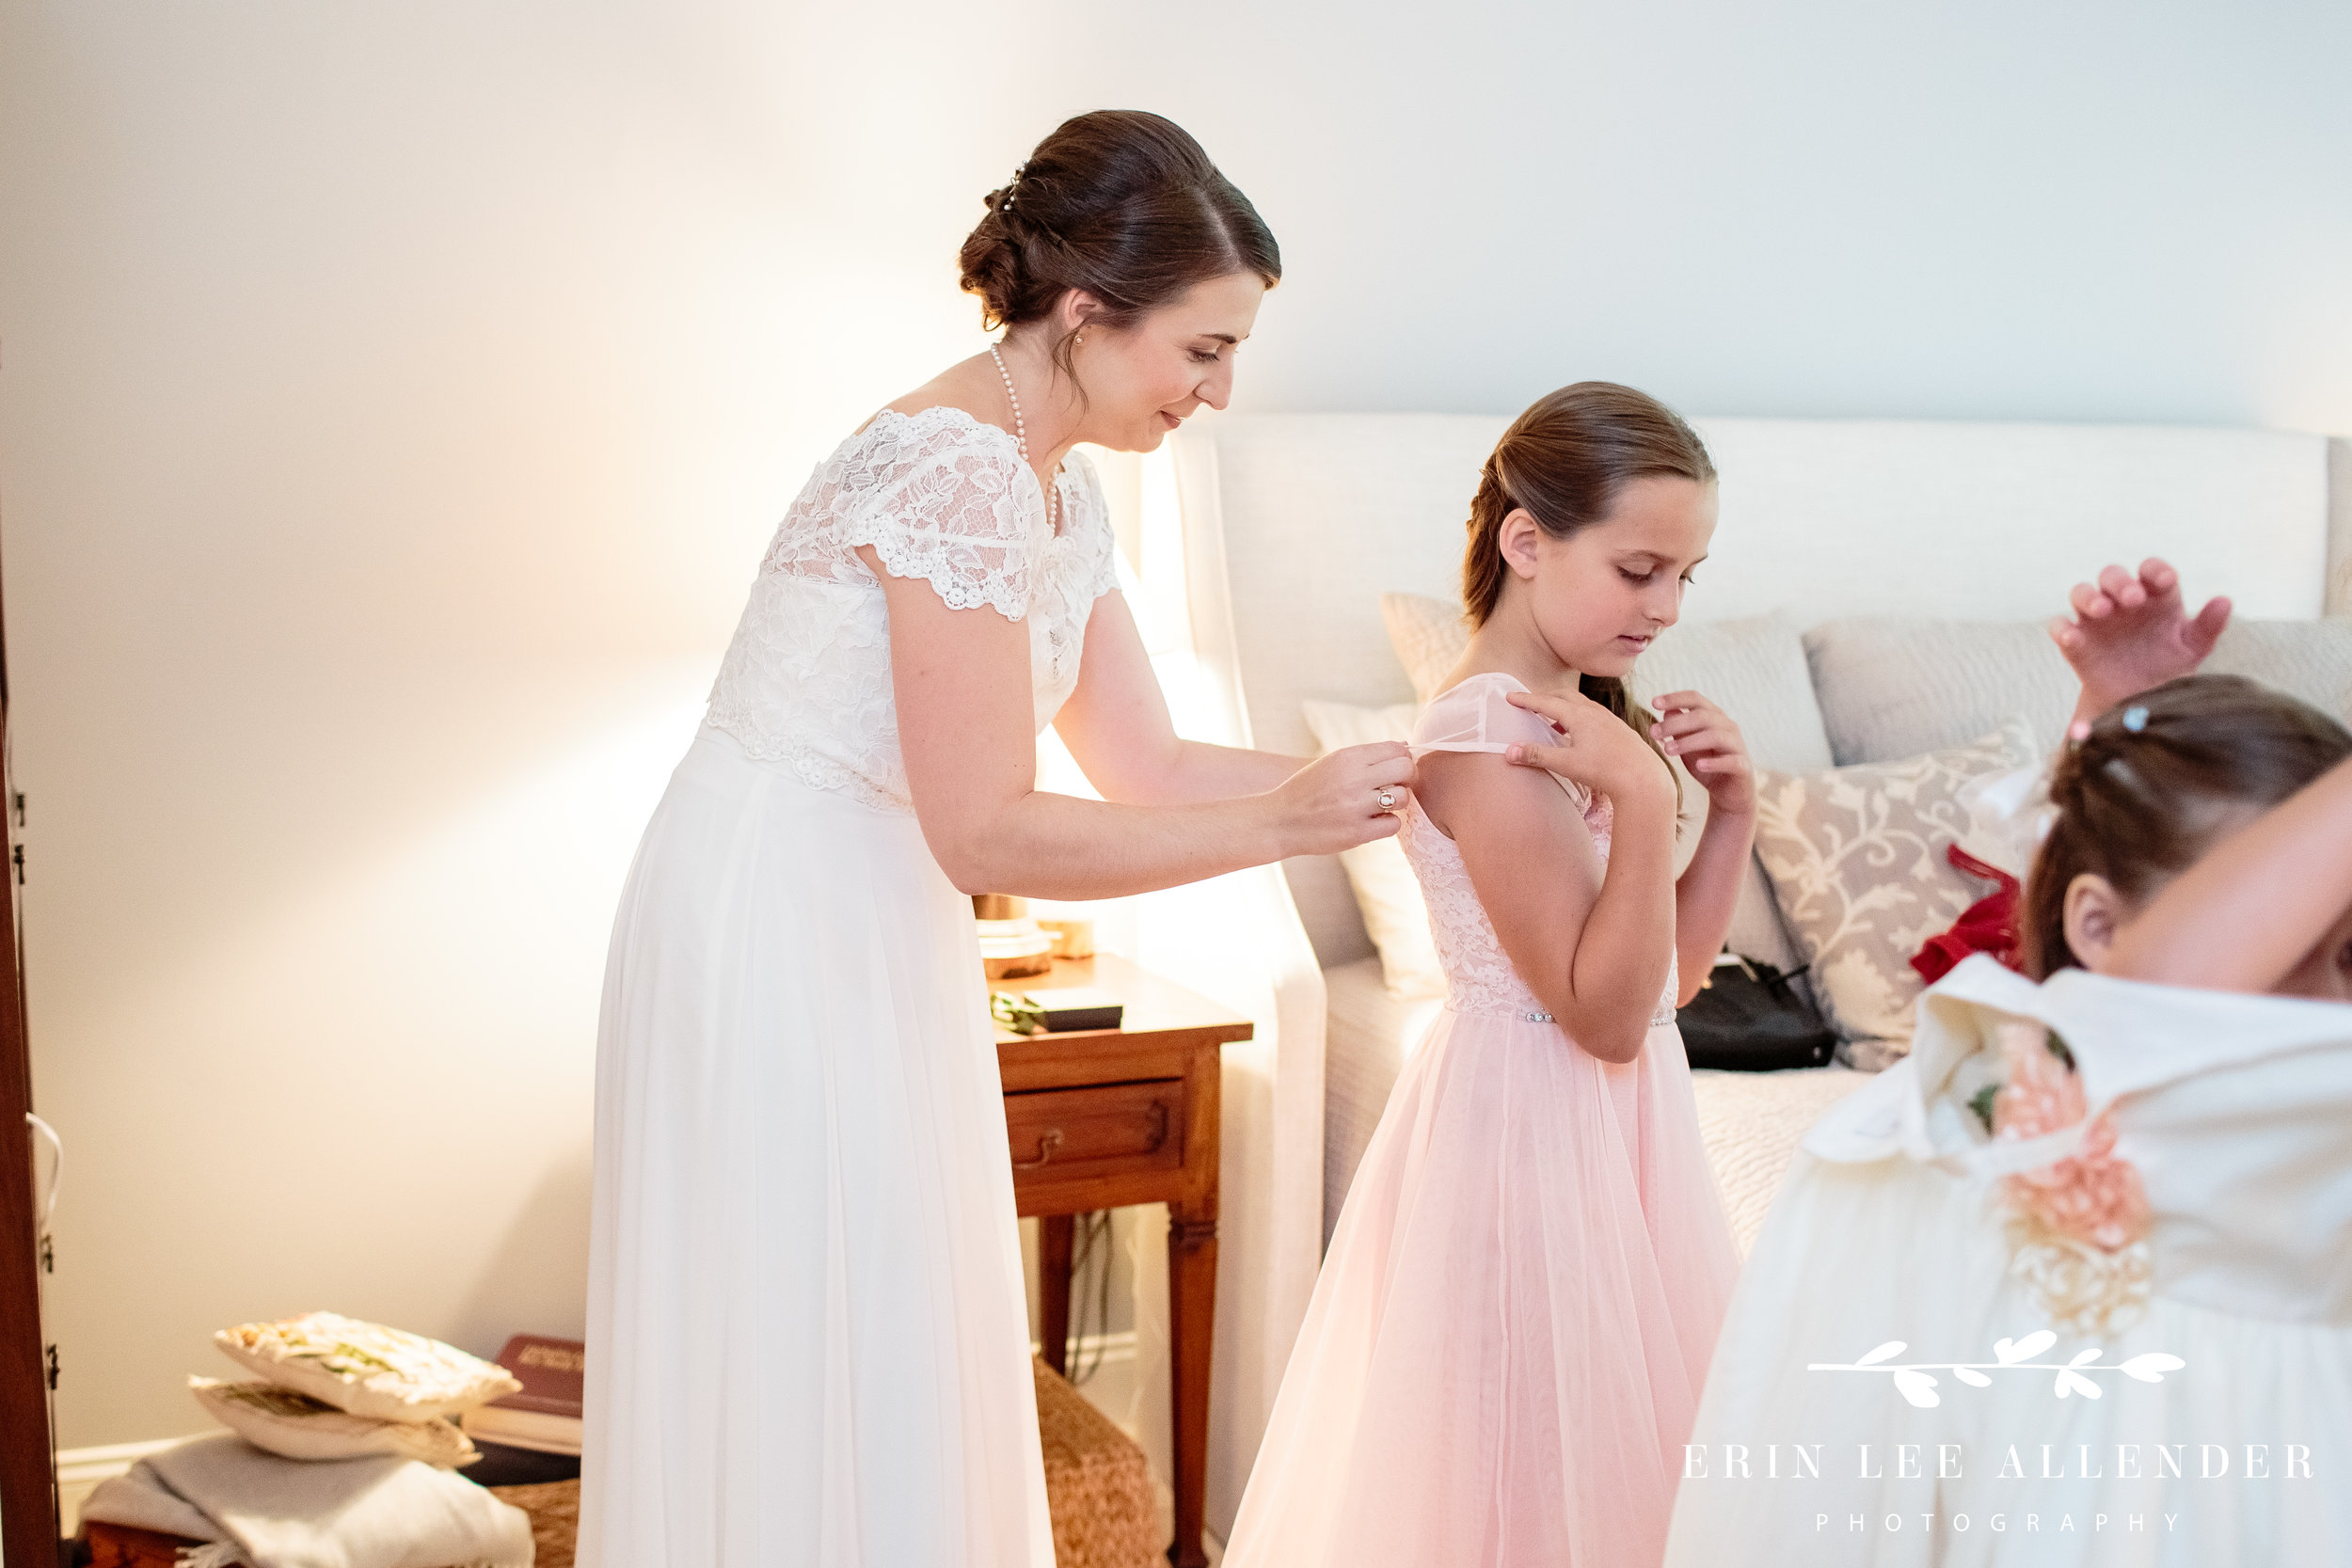 bride-helping-stepdaughter